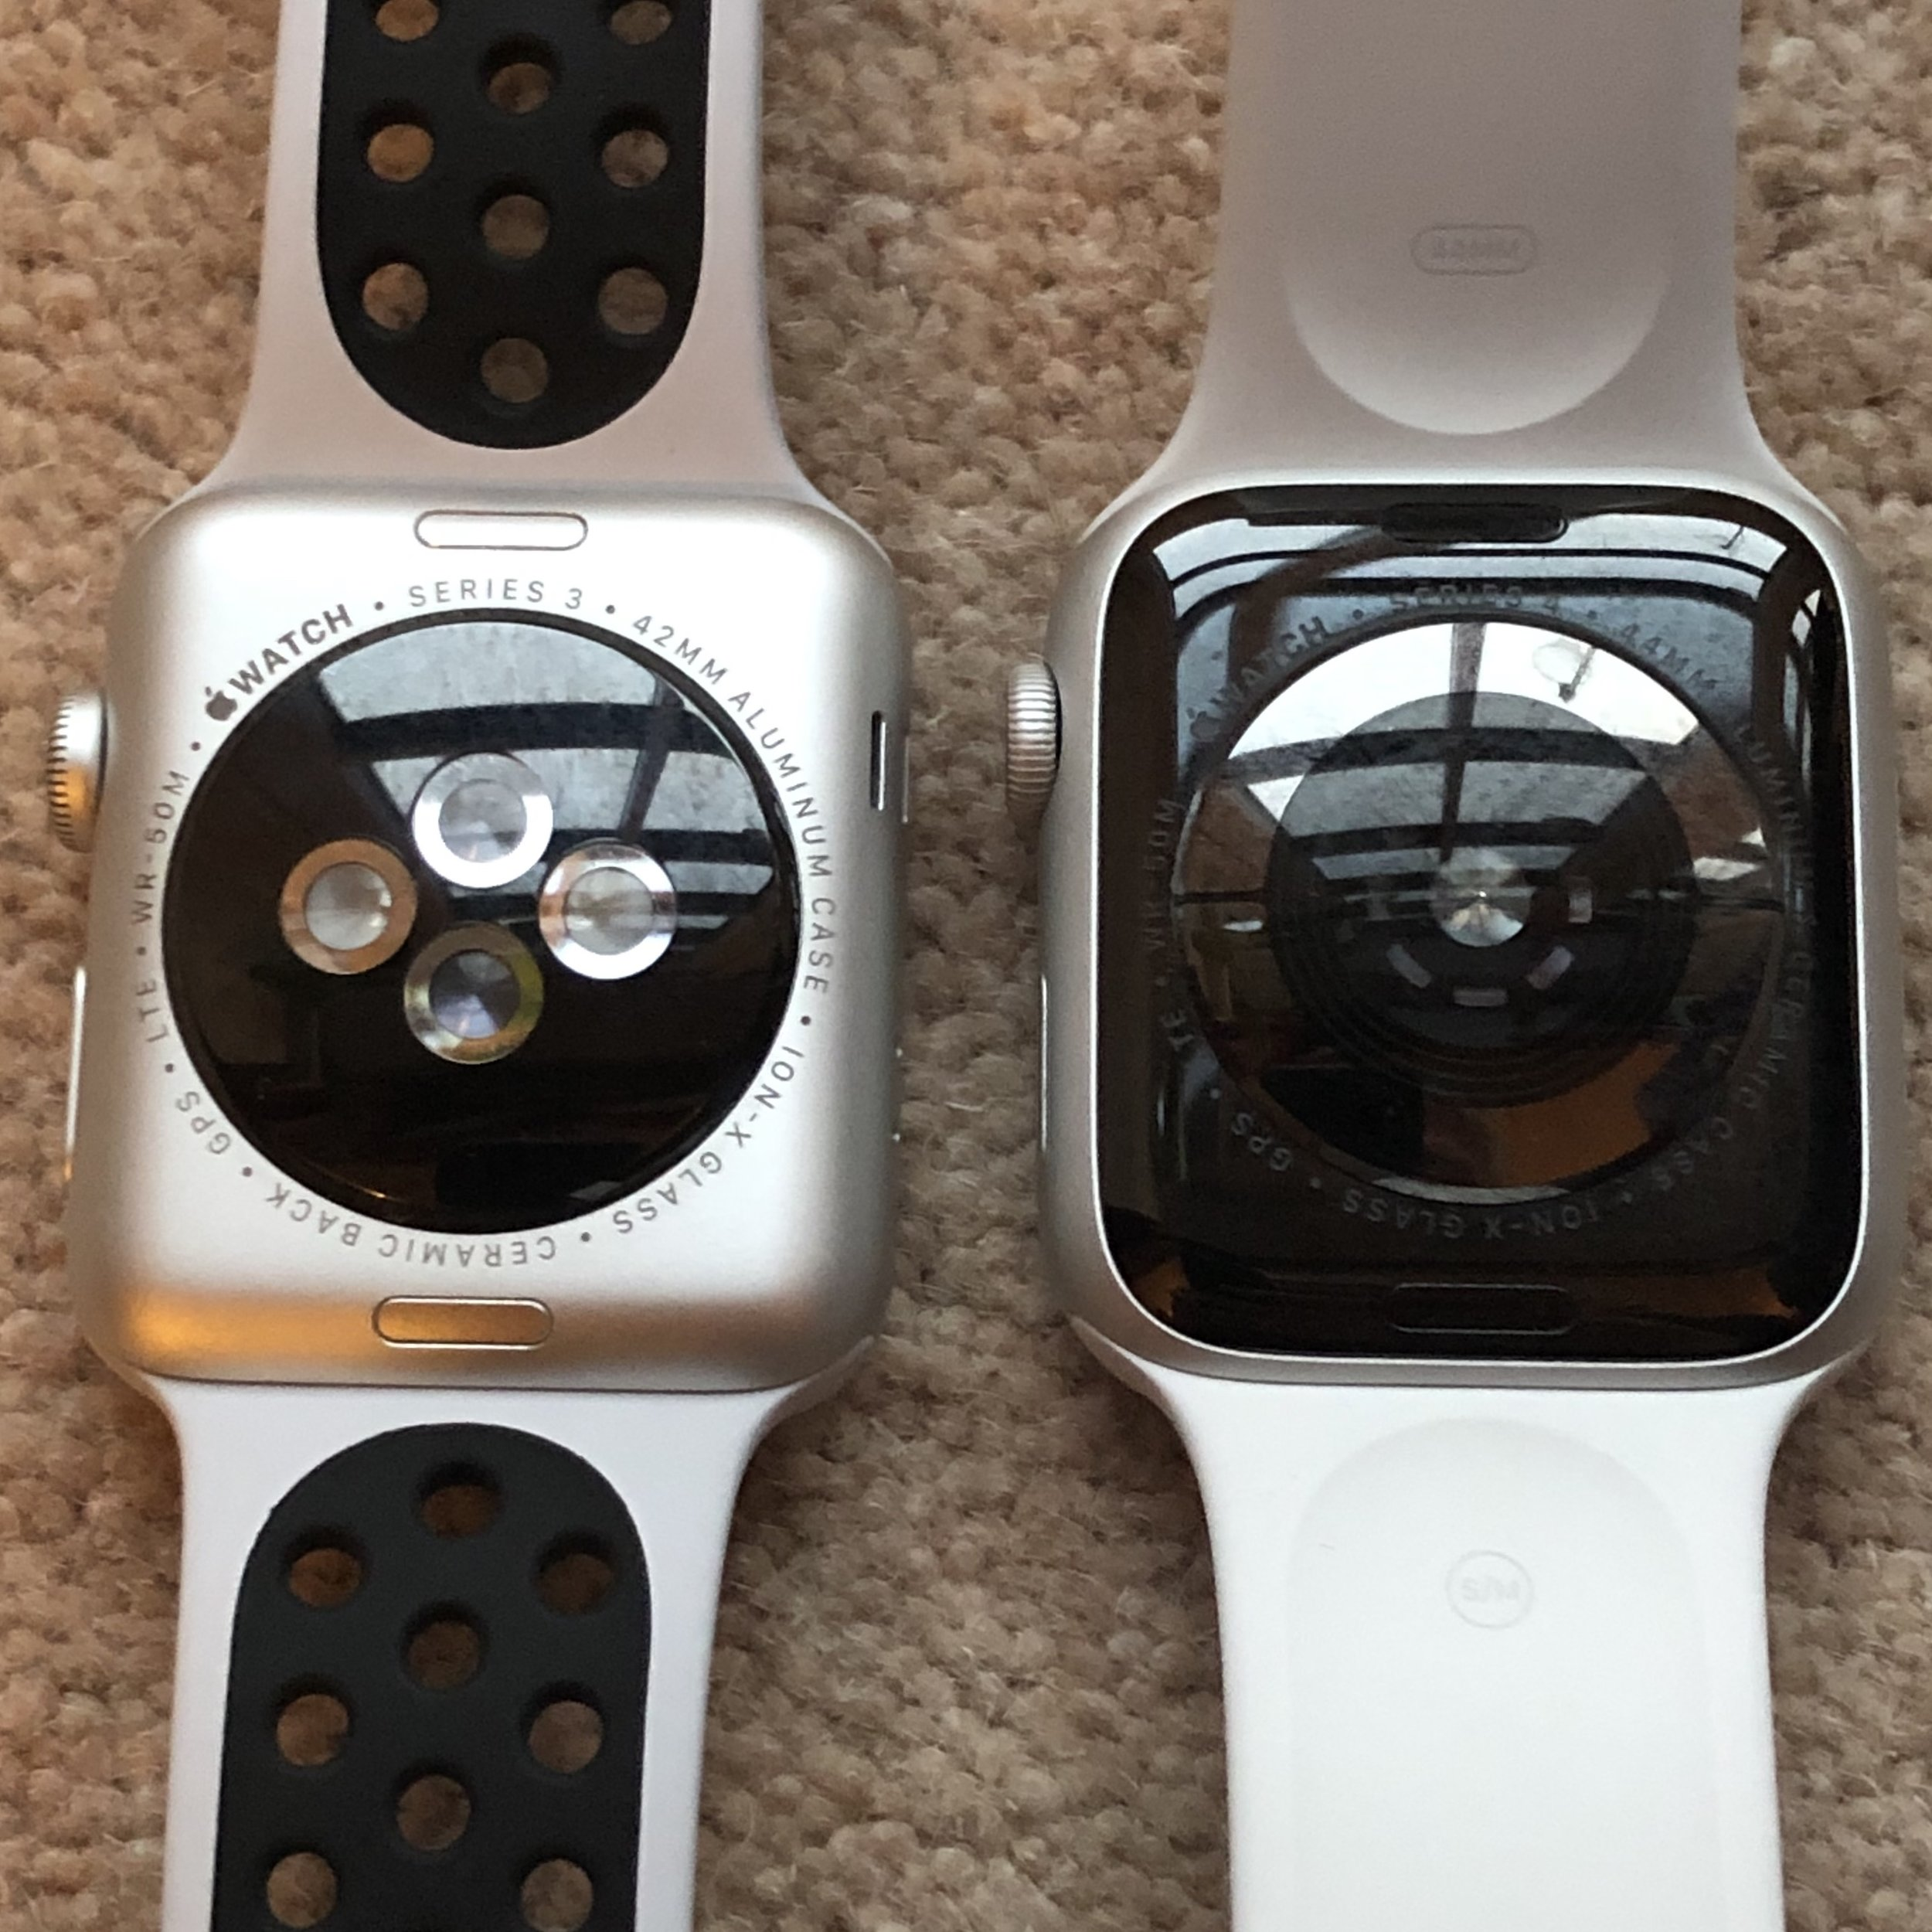 Series 4 on the right